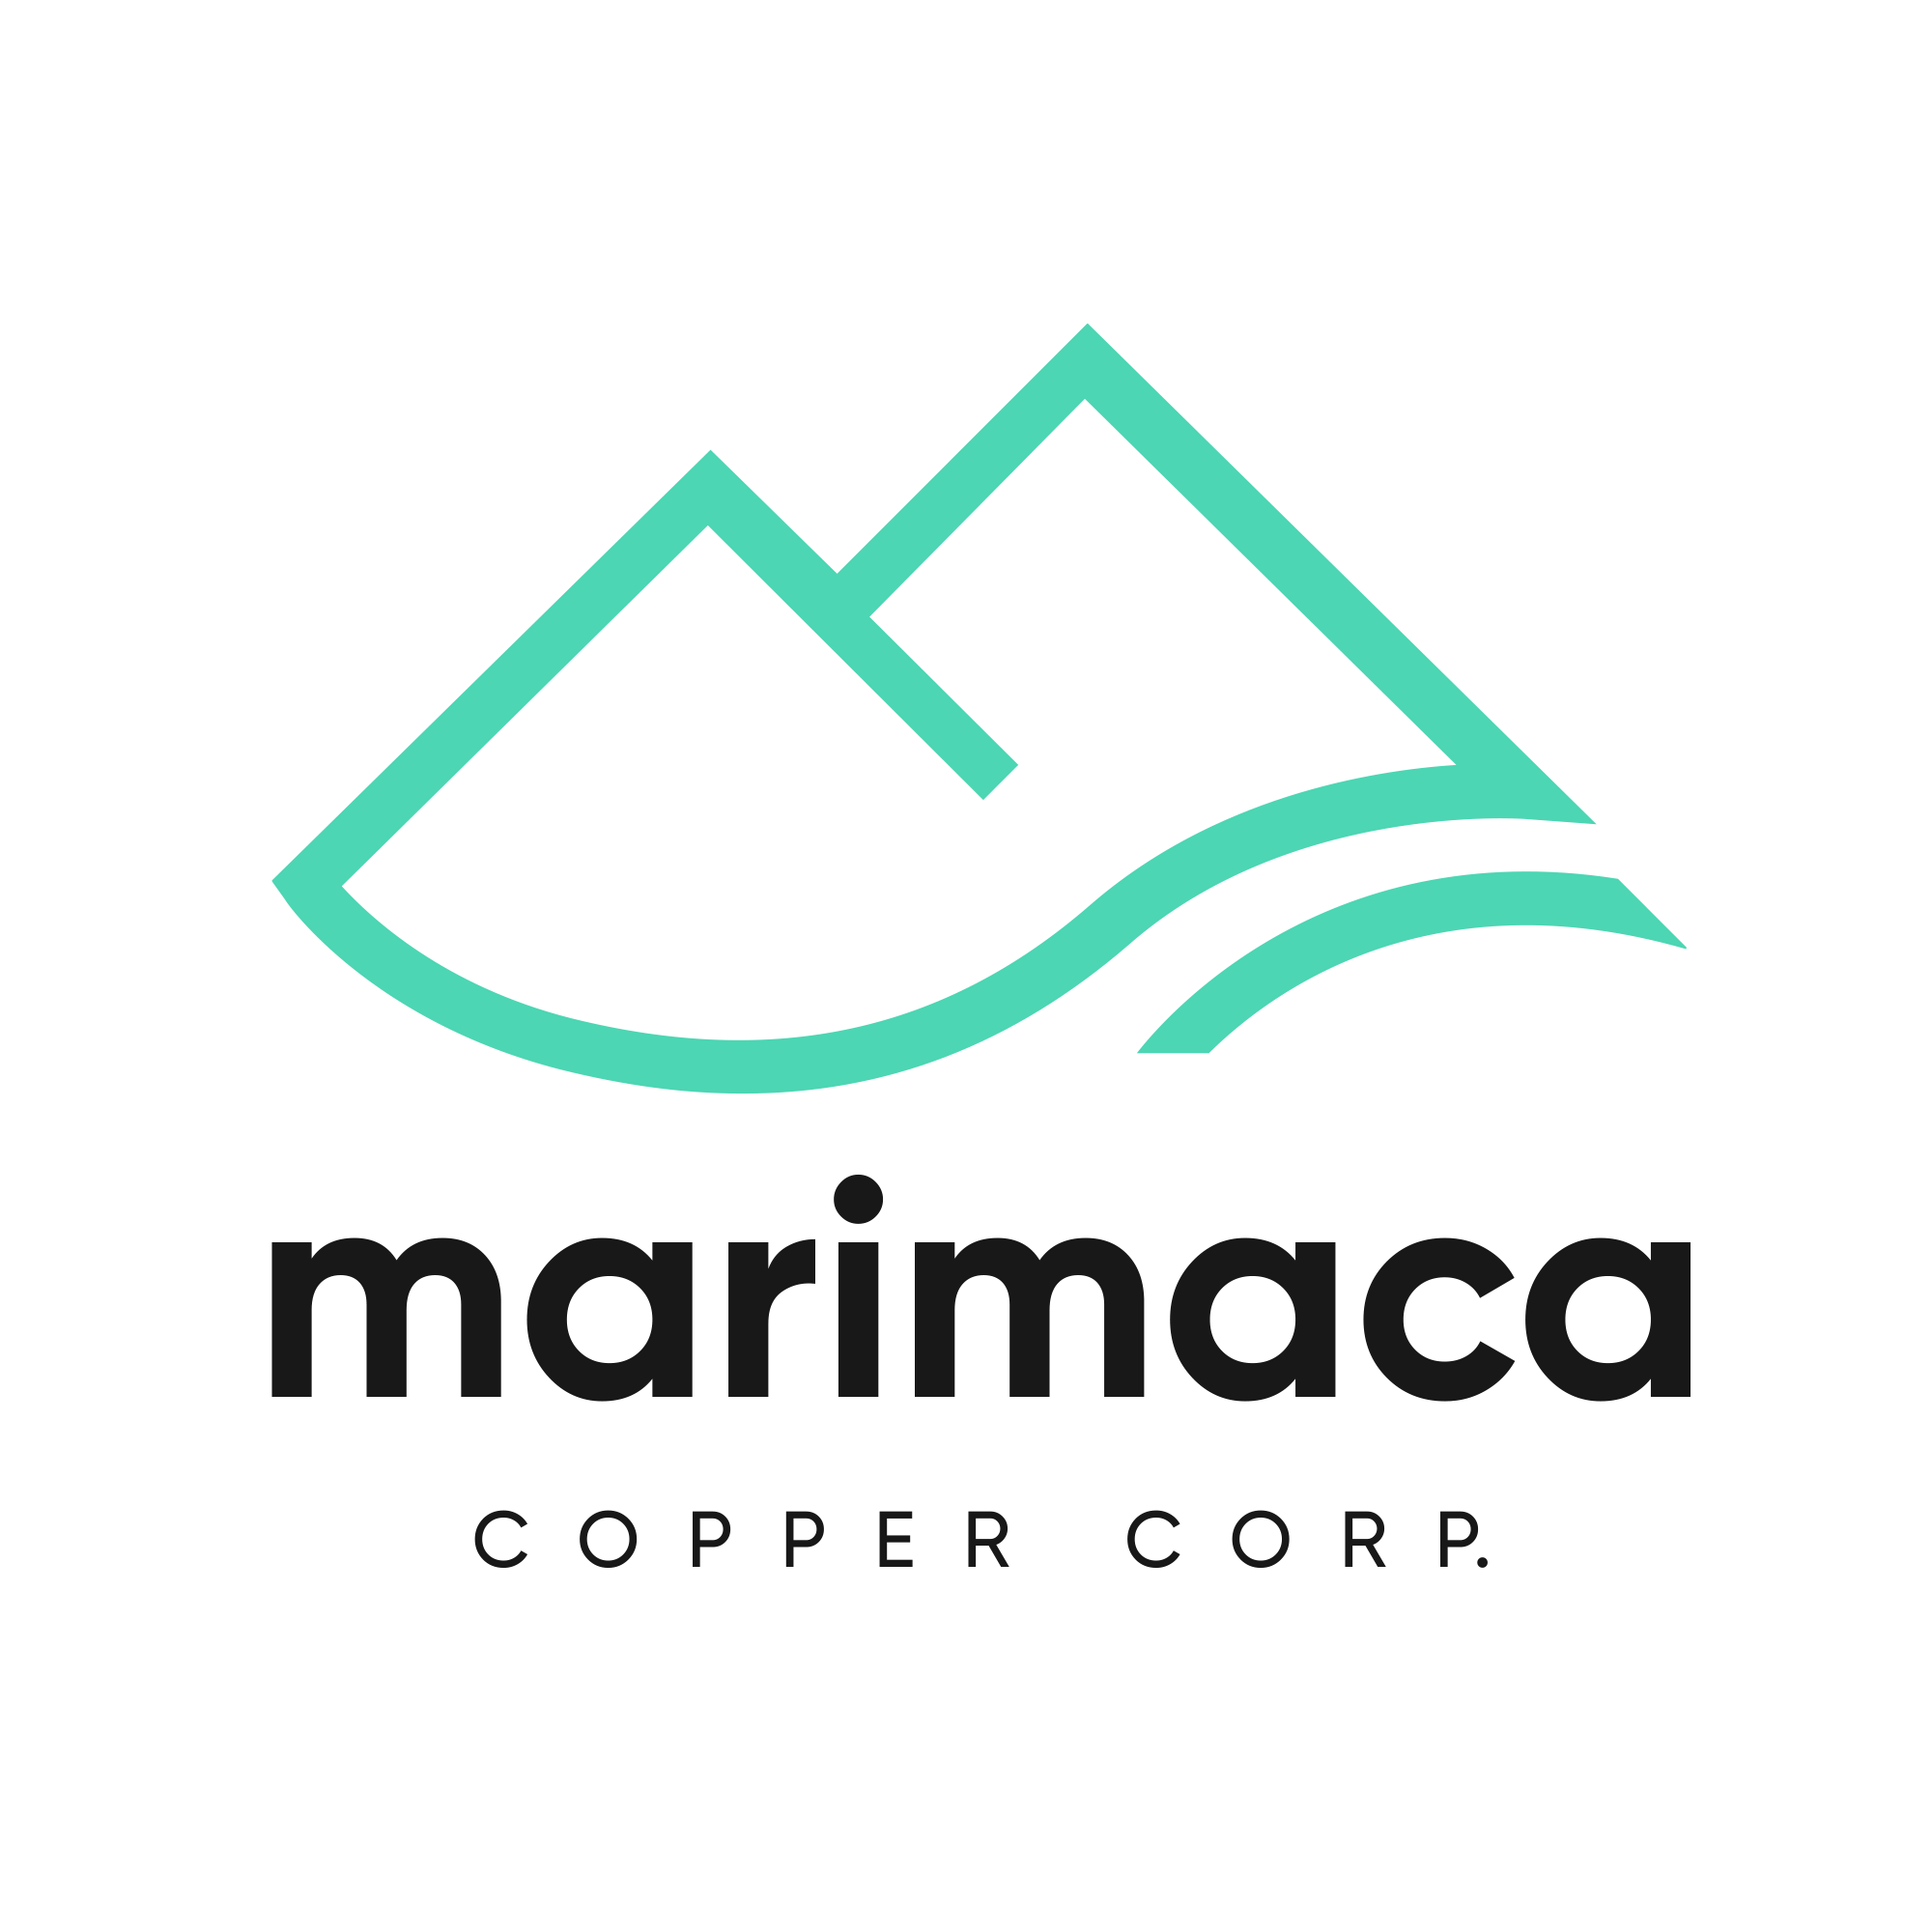 Metallurgical Test Work Indicates Favourable Recoveries and Identifies Areas for Optimization at Marimaca